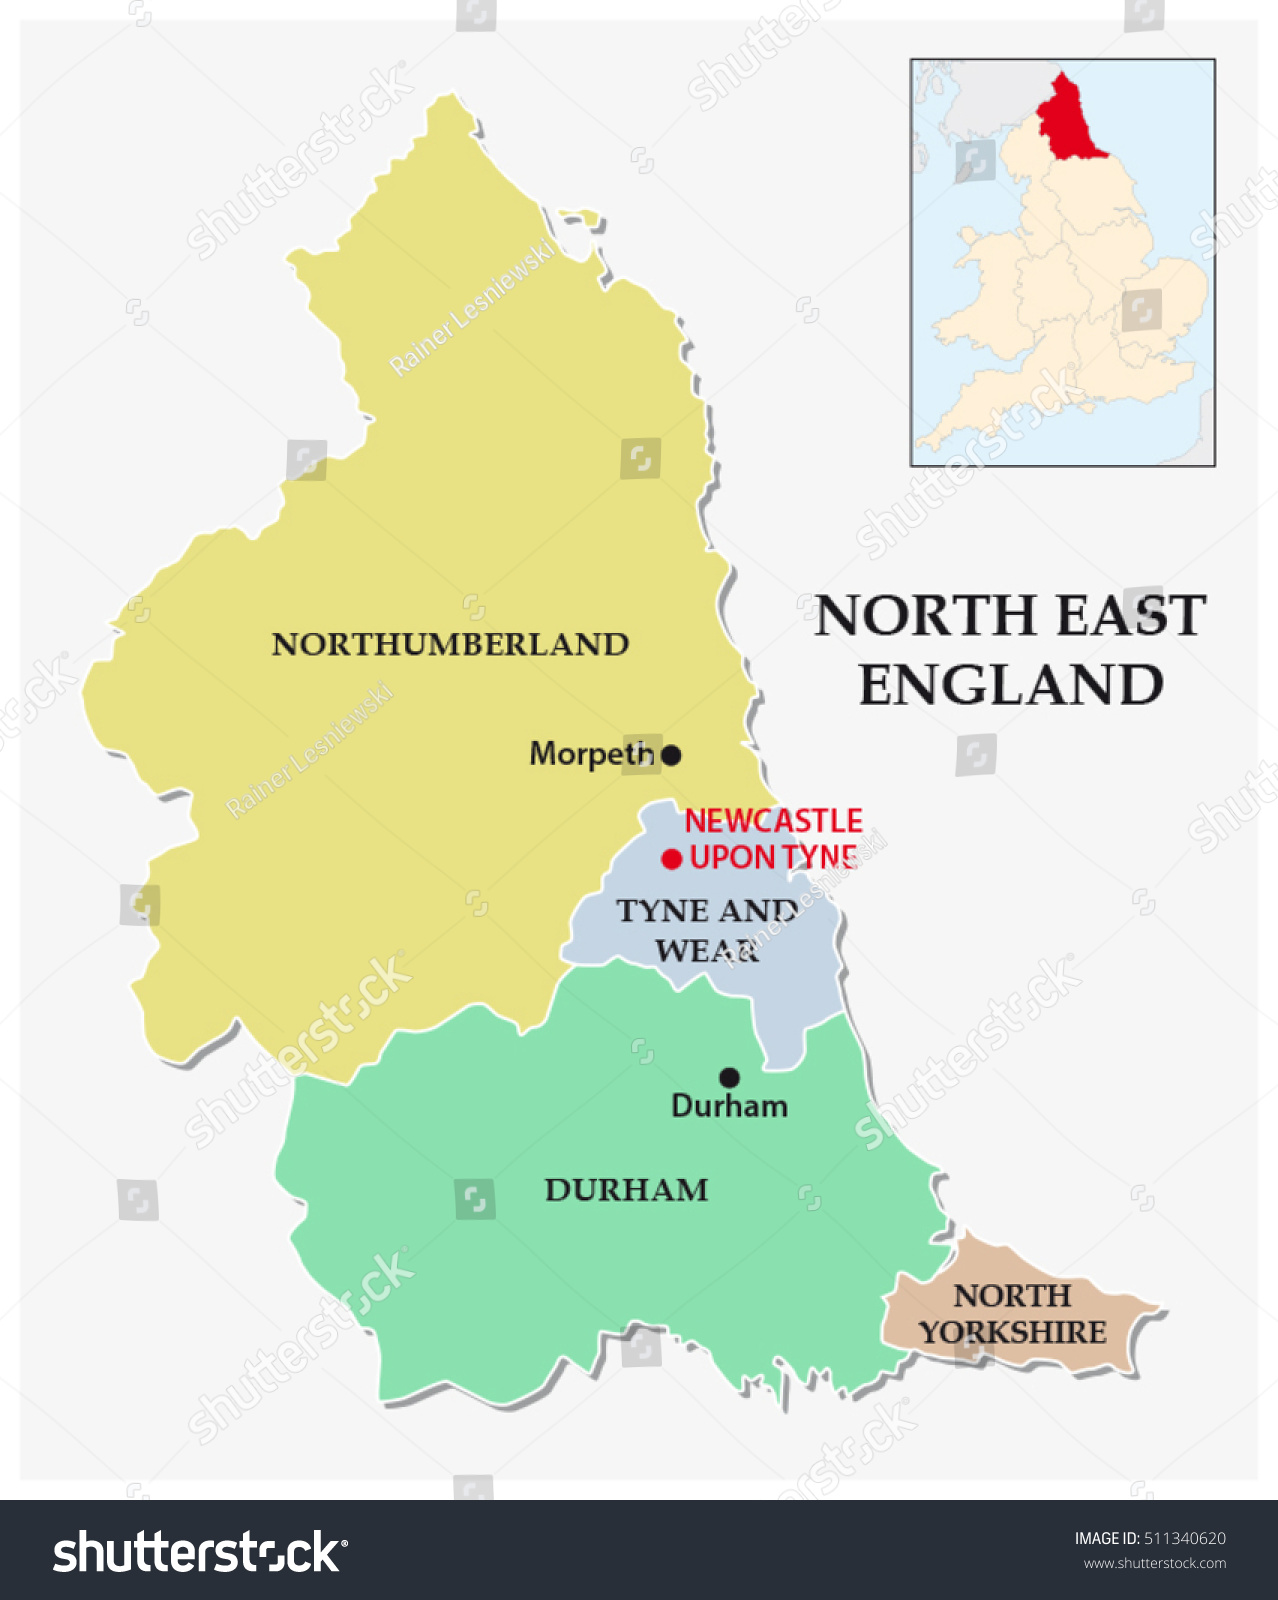 North east england administrative political map vector de north east england administrative political map vector de stock511340620 shutterstock gumiabroncs Choice Image